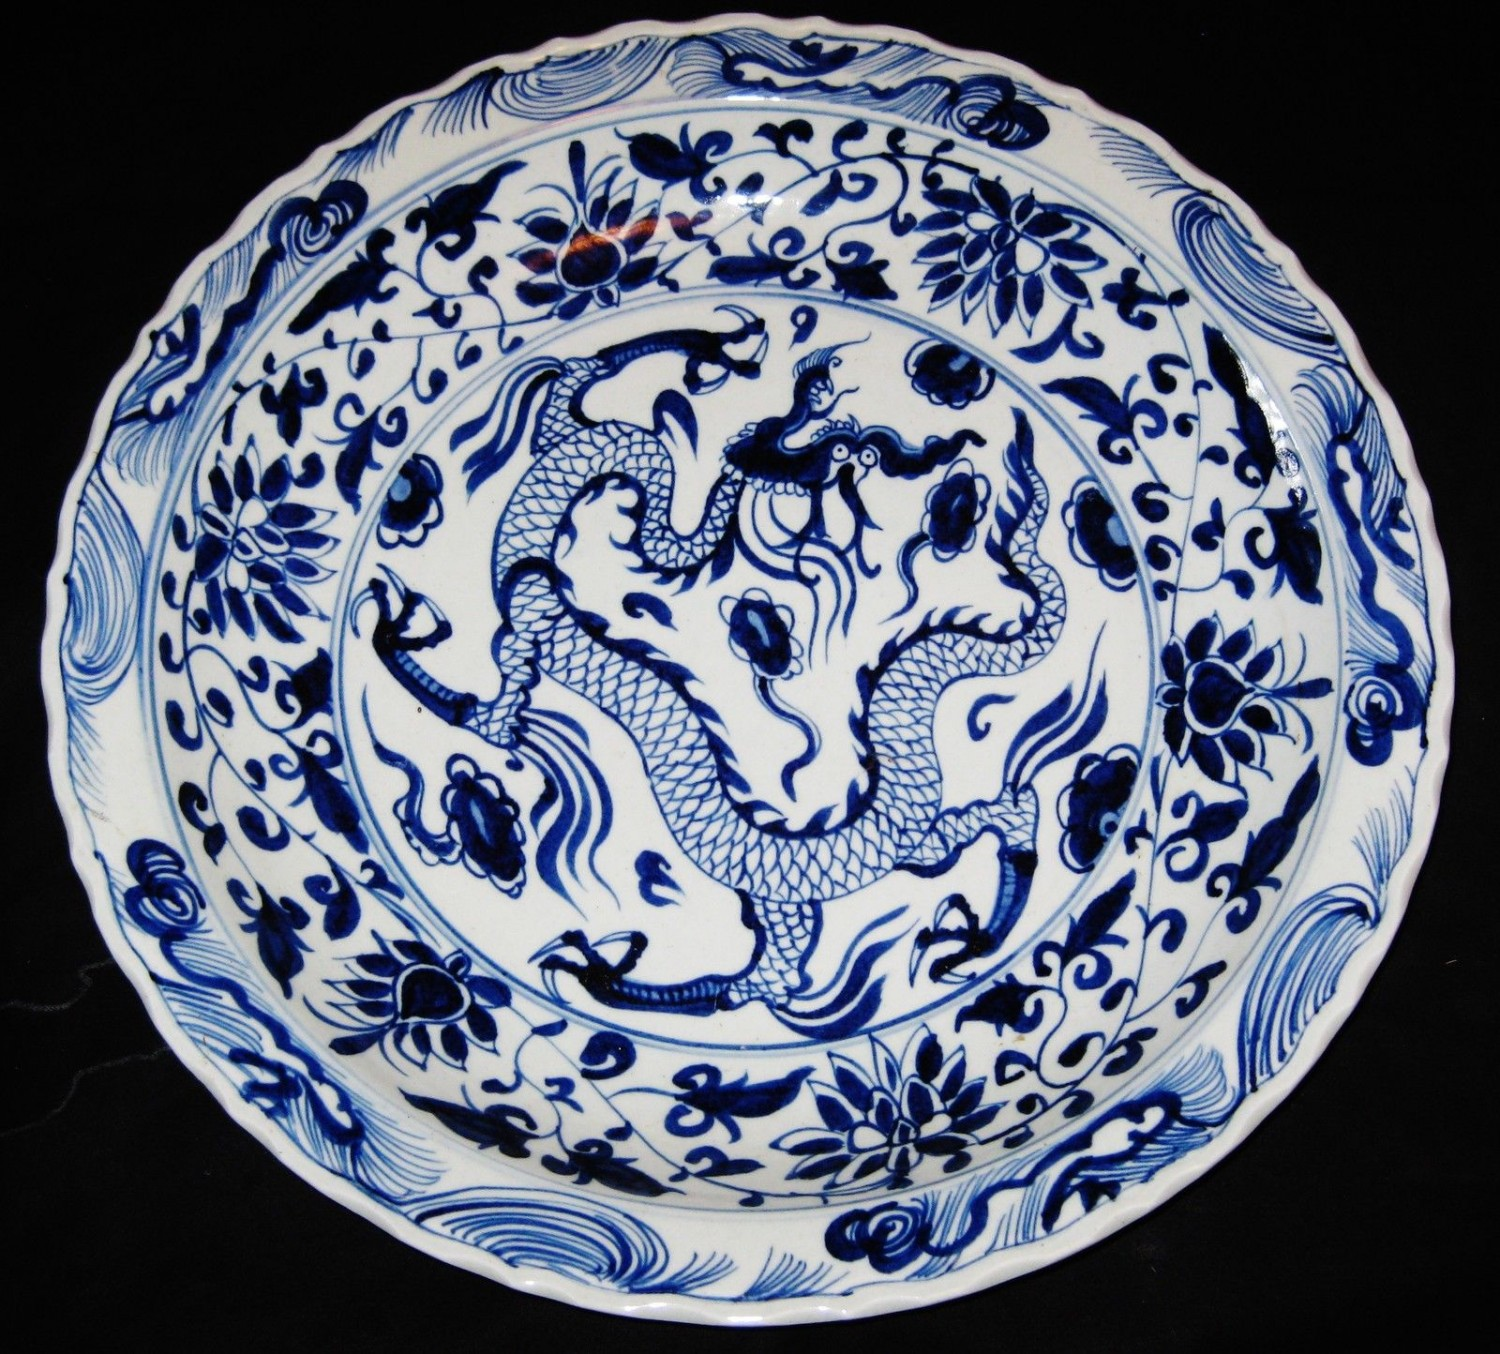 BIG ANTIQUE CHINESE DRAGON PORCELAIN, 43CM B&W CHARGER,19TH C, XUANDE MARK.